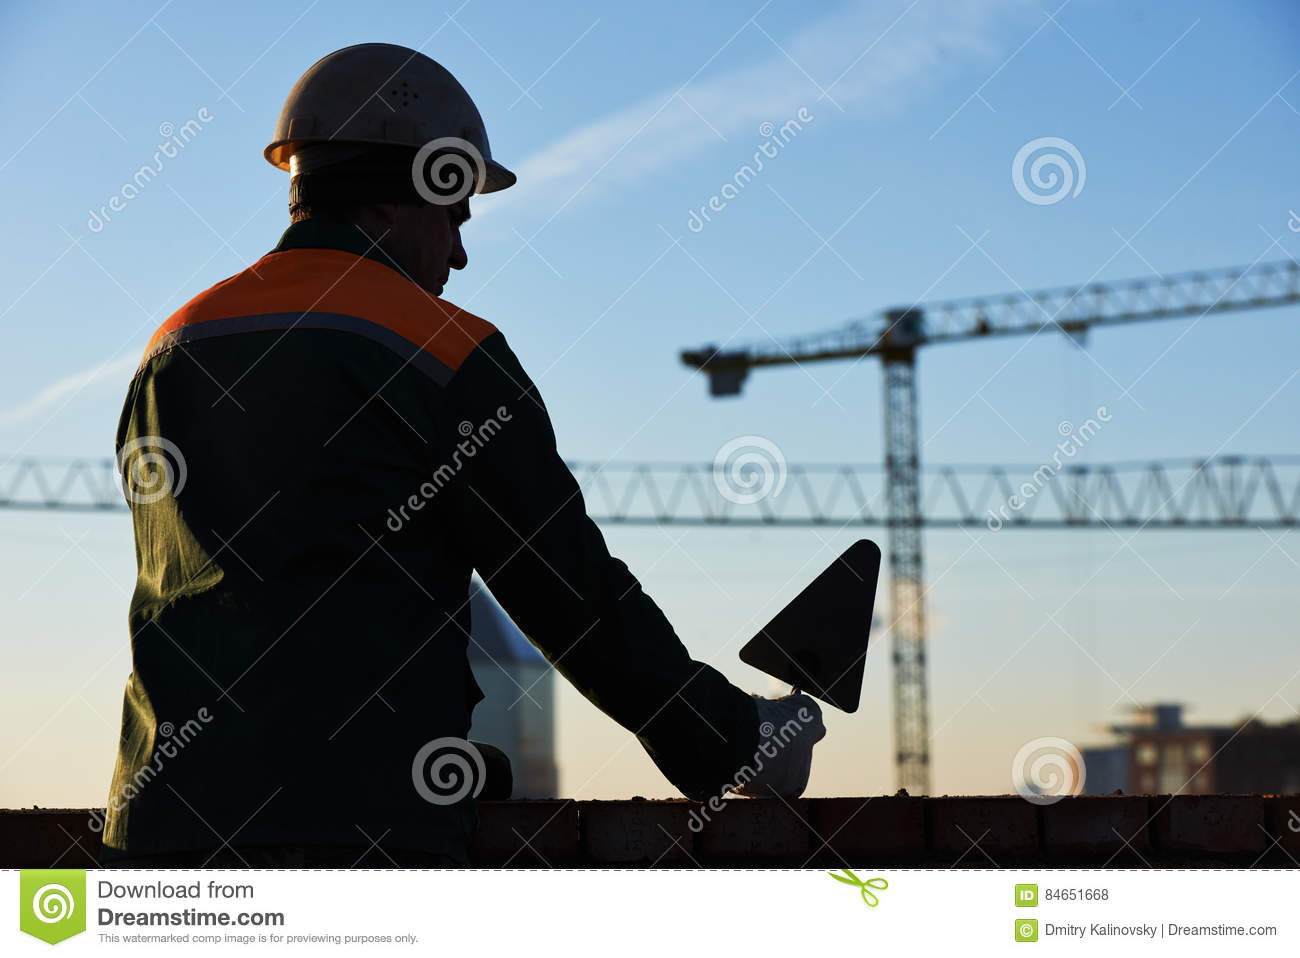 Construction worker bricklayer. Silhouette